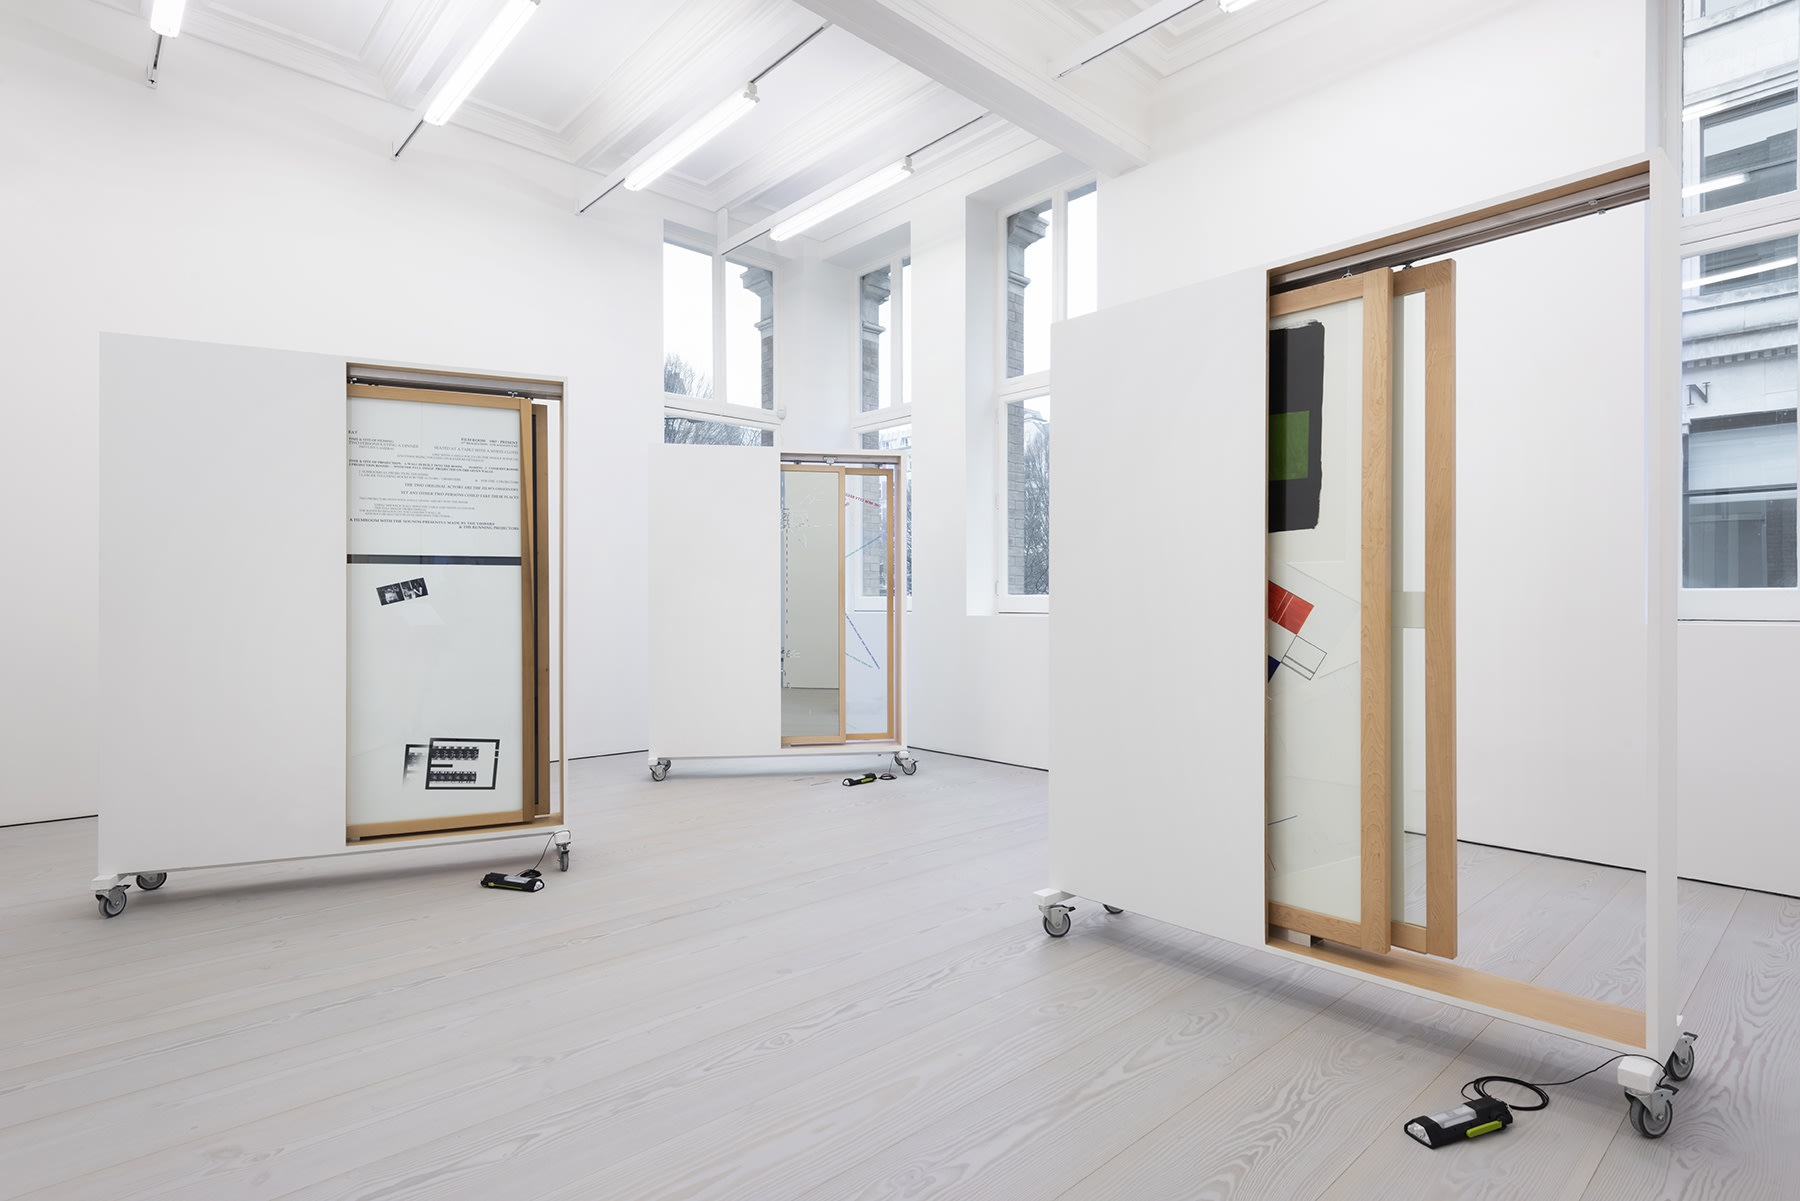 3 structures on wheels contain sliding doors displaying drawings.